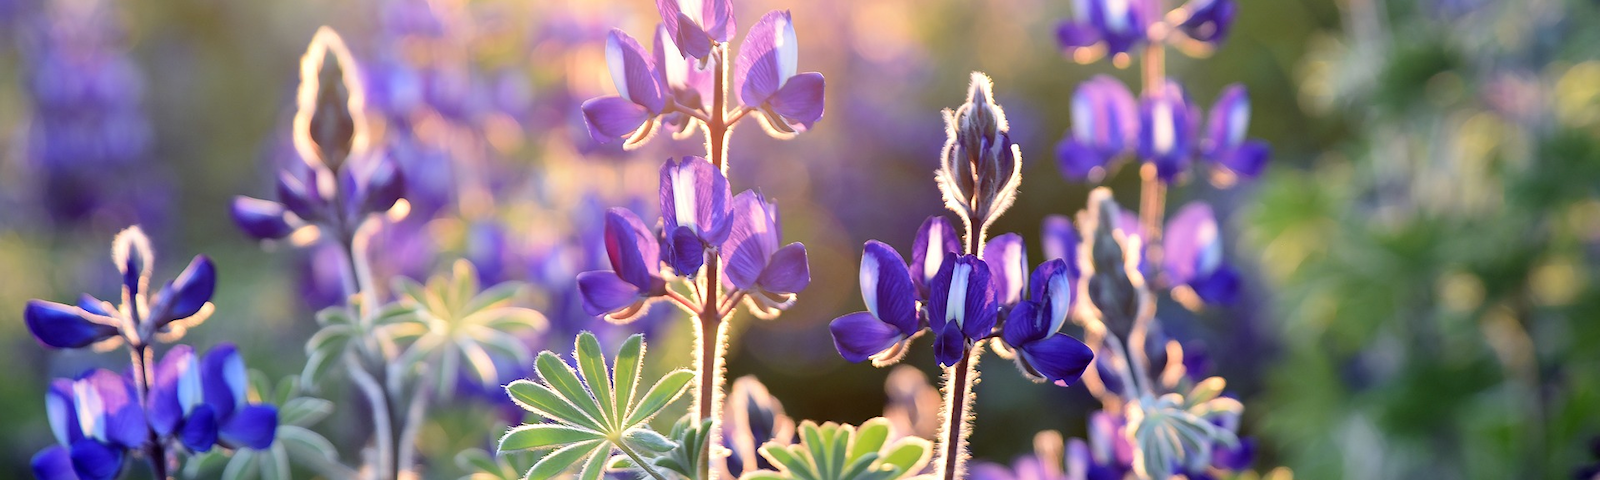 BF-lupine-1600x480.png